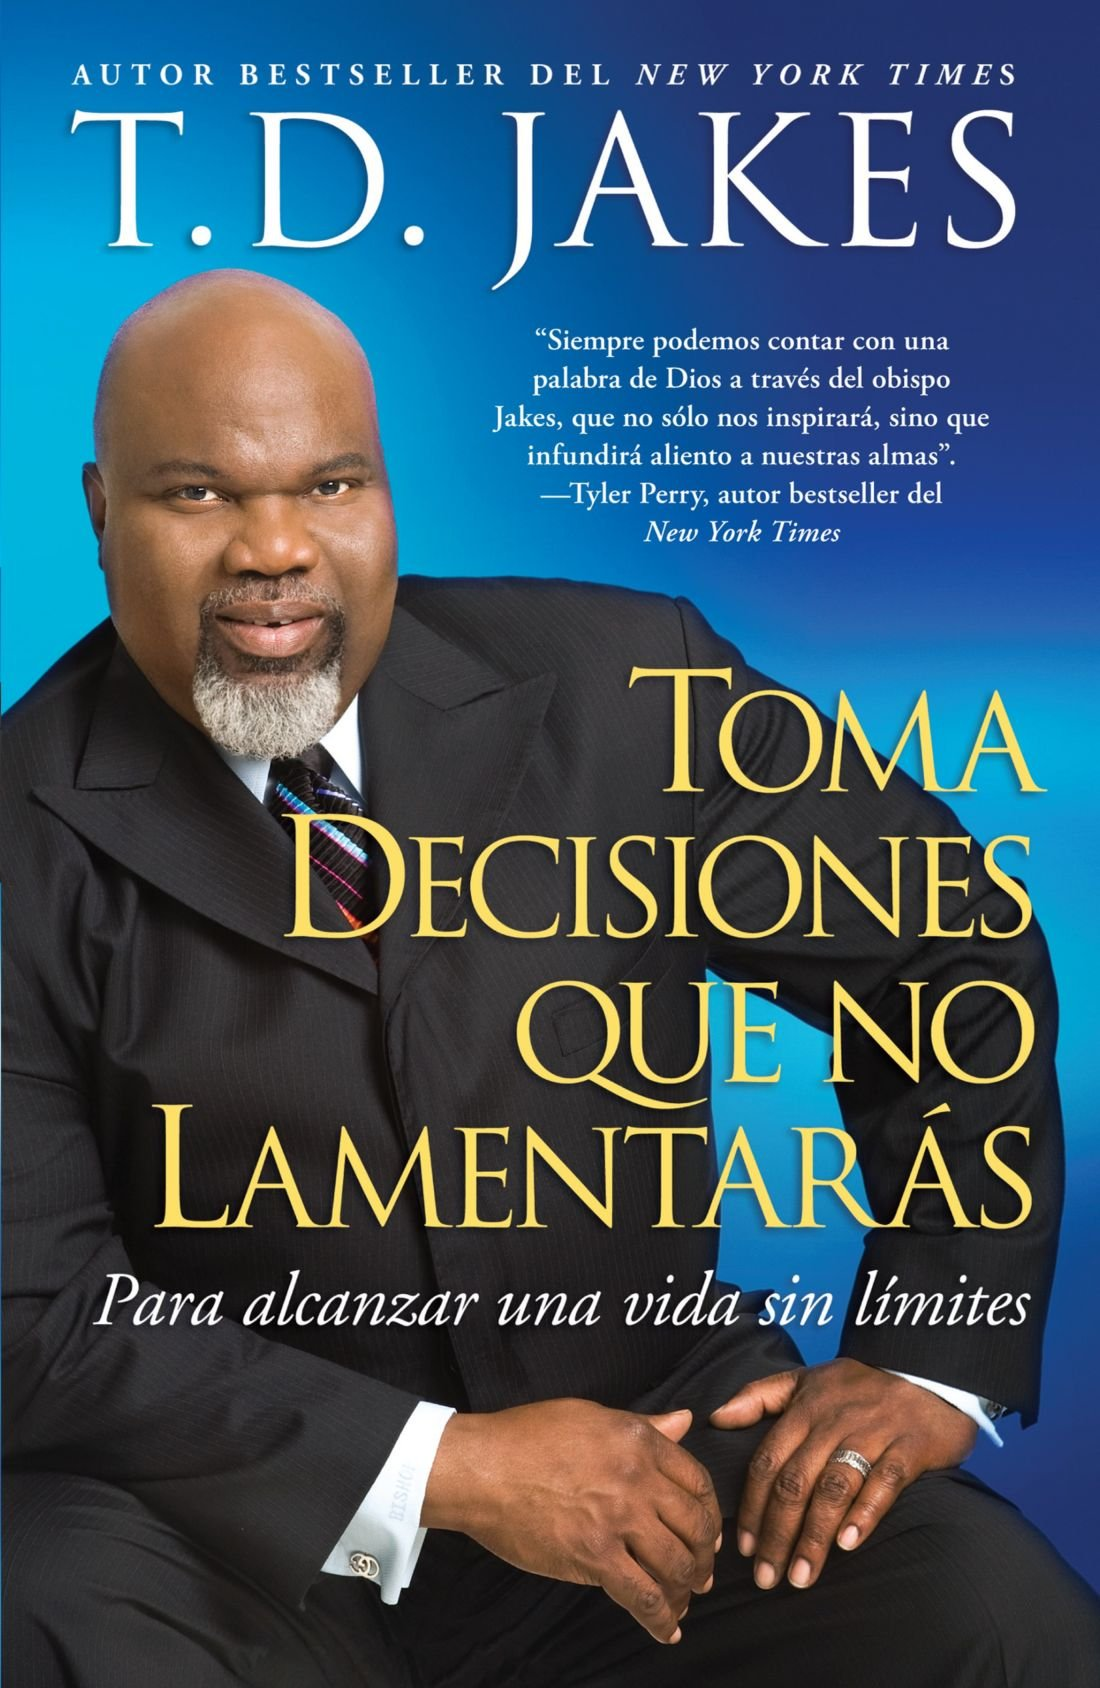 Download Toma decisiones que no lamentarás (Making Great Decisions): Para alcanzar una vida sin límites (Atria Espanol) (Spanish Edition) PDF